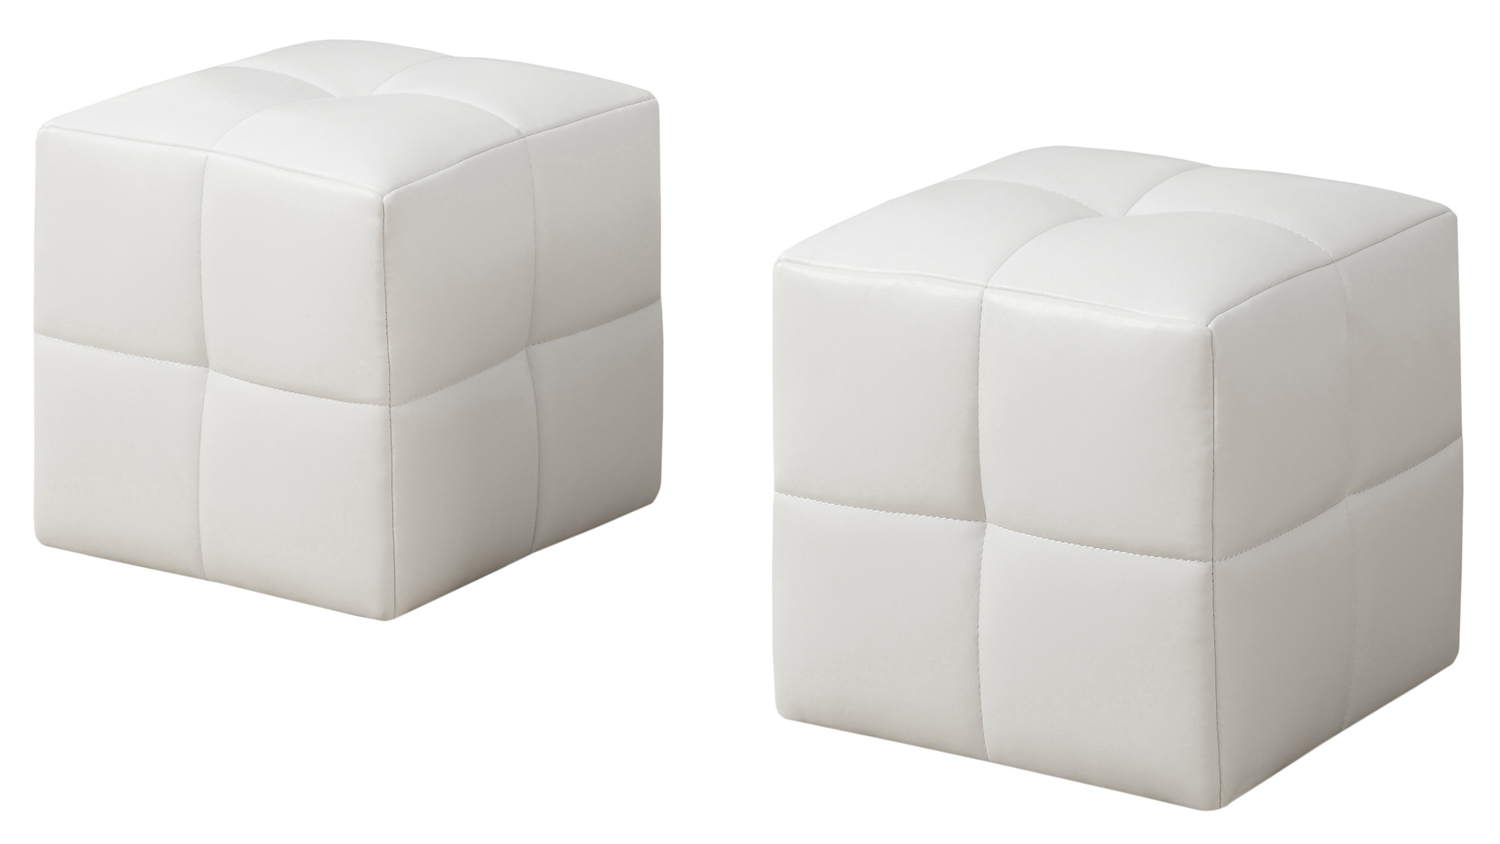 2 Piece Juvenile Ottoman Set, White Leather-Look